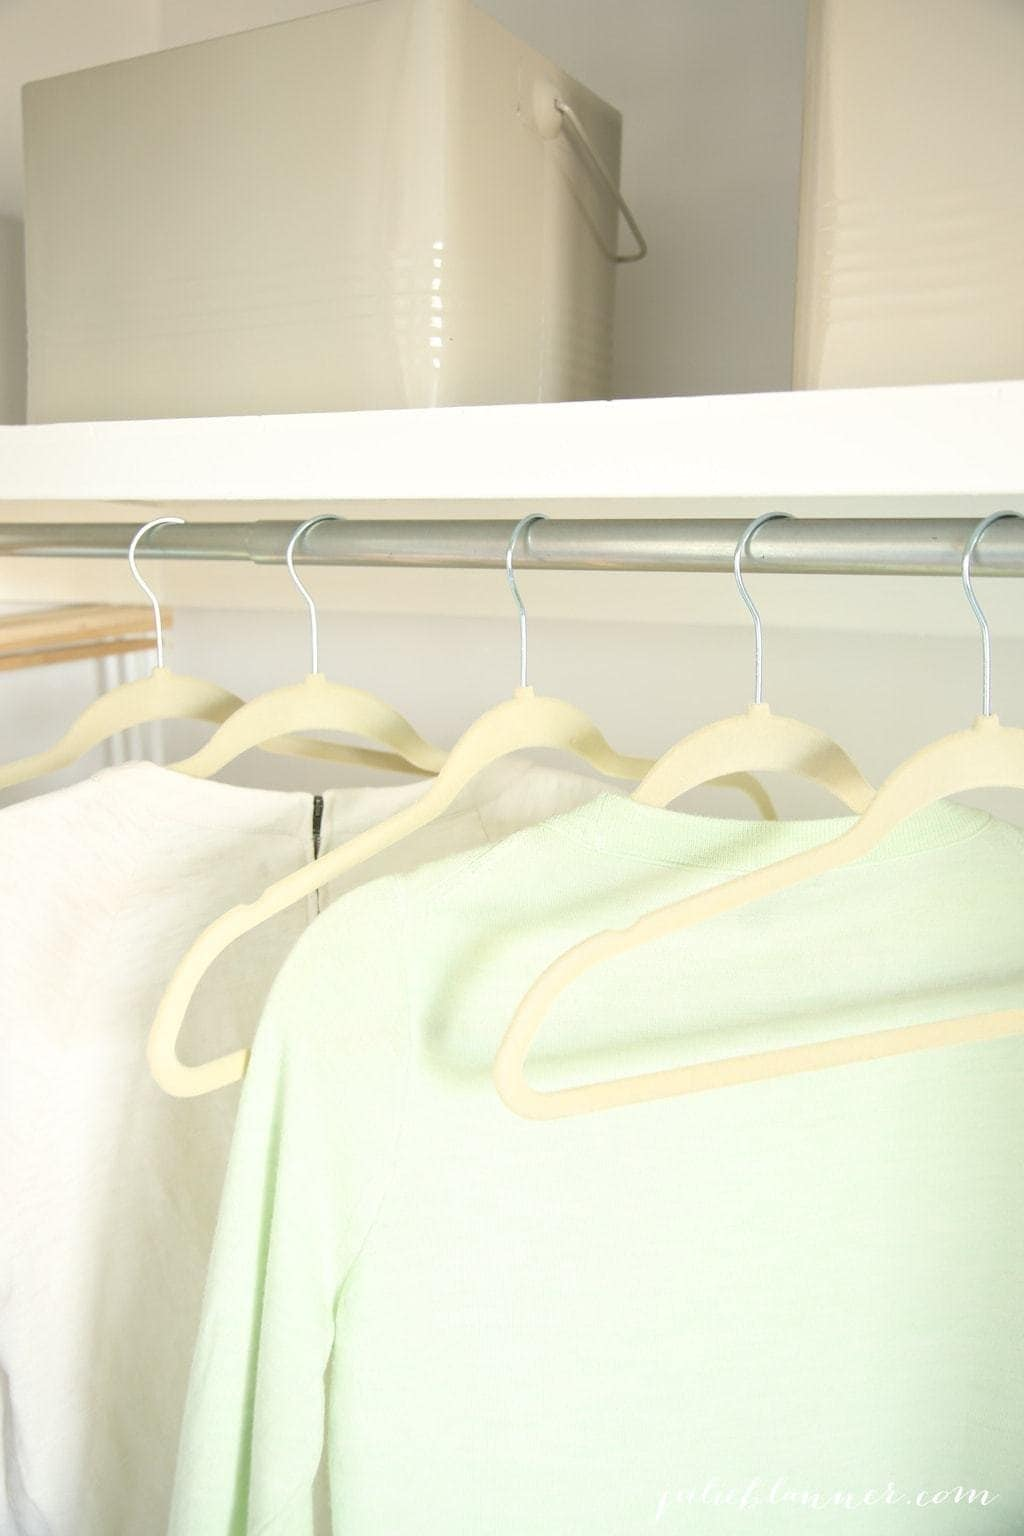 clothes hanging on closet rod